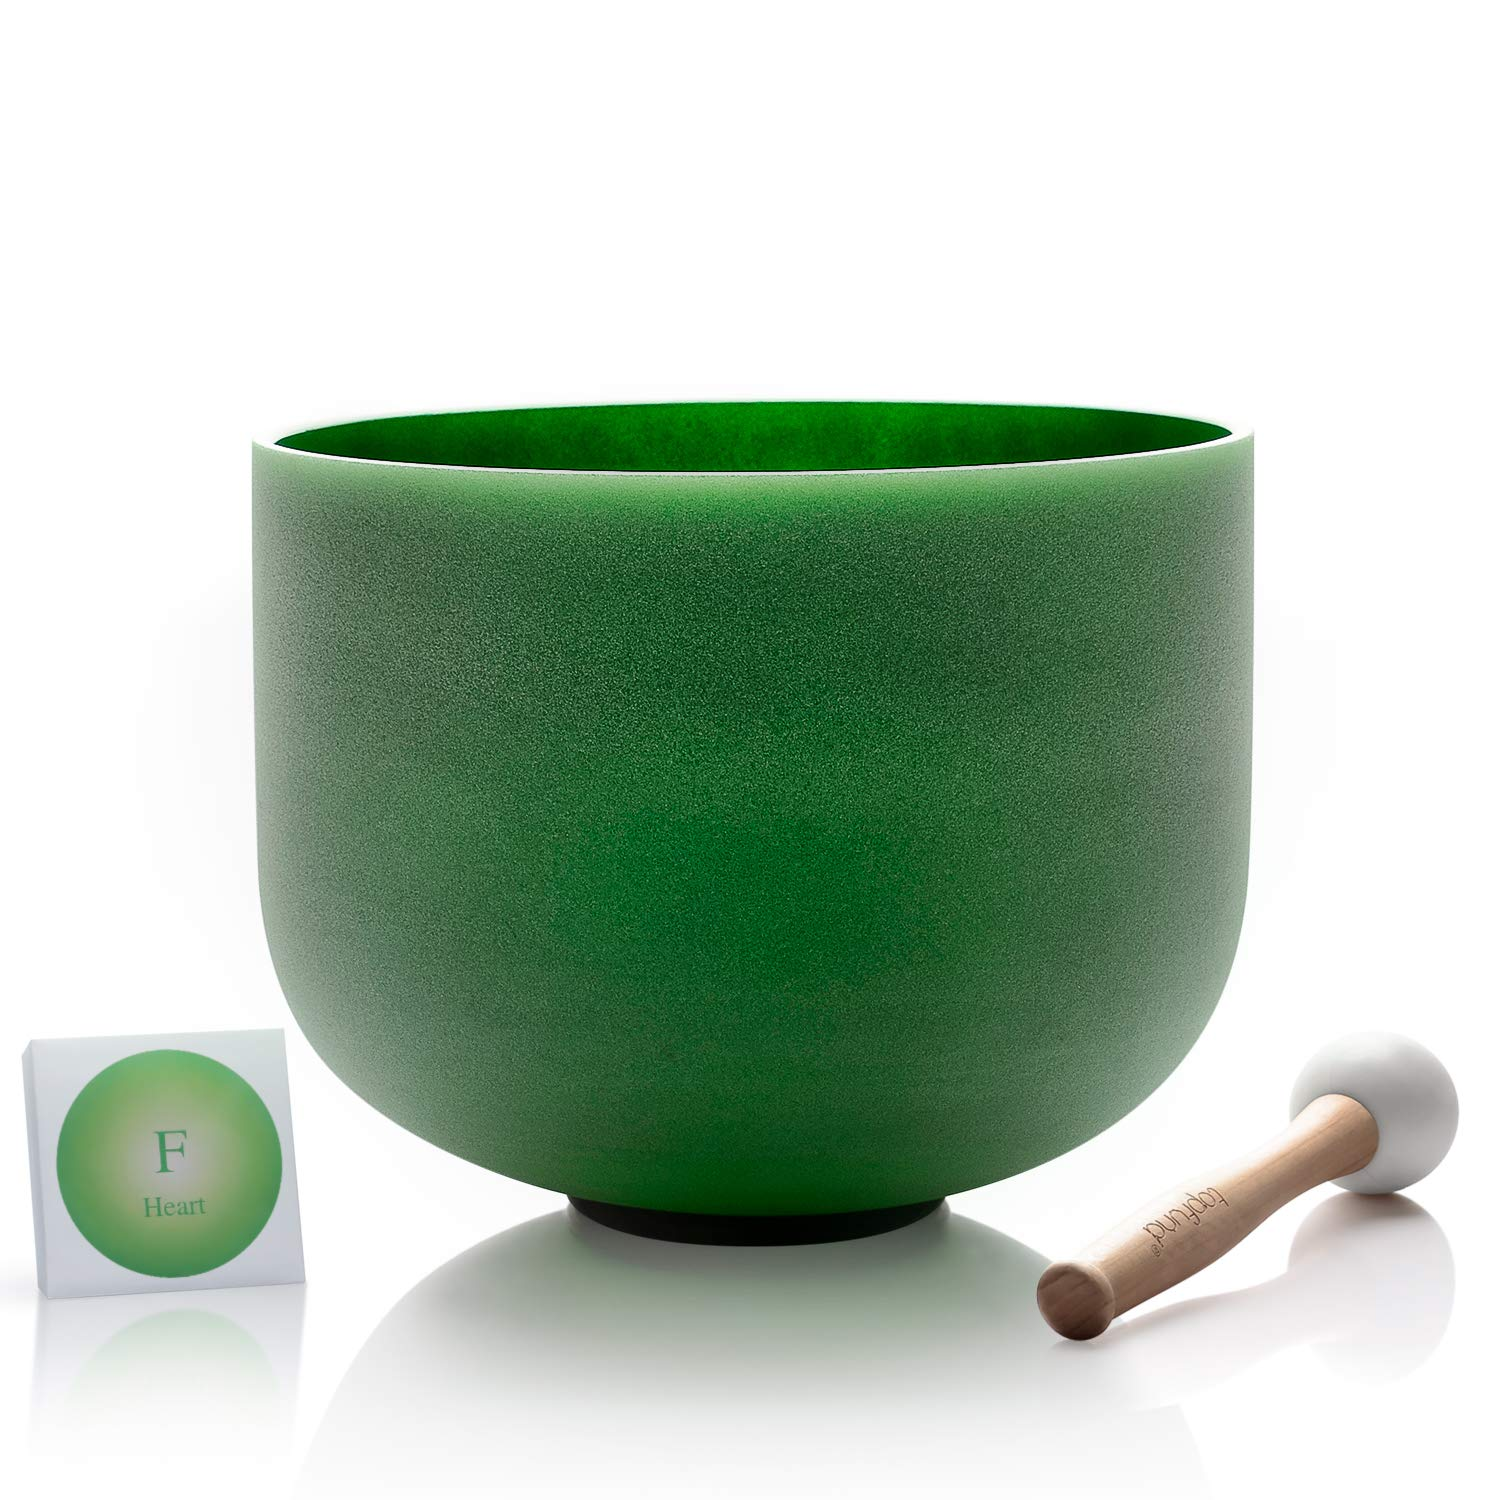 TOPFUND F Note Quartz Crystal Singing Bowl Heart Chakra Green Color 8 inch O-ring and Rubber Mallet Included by TOPFUND